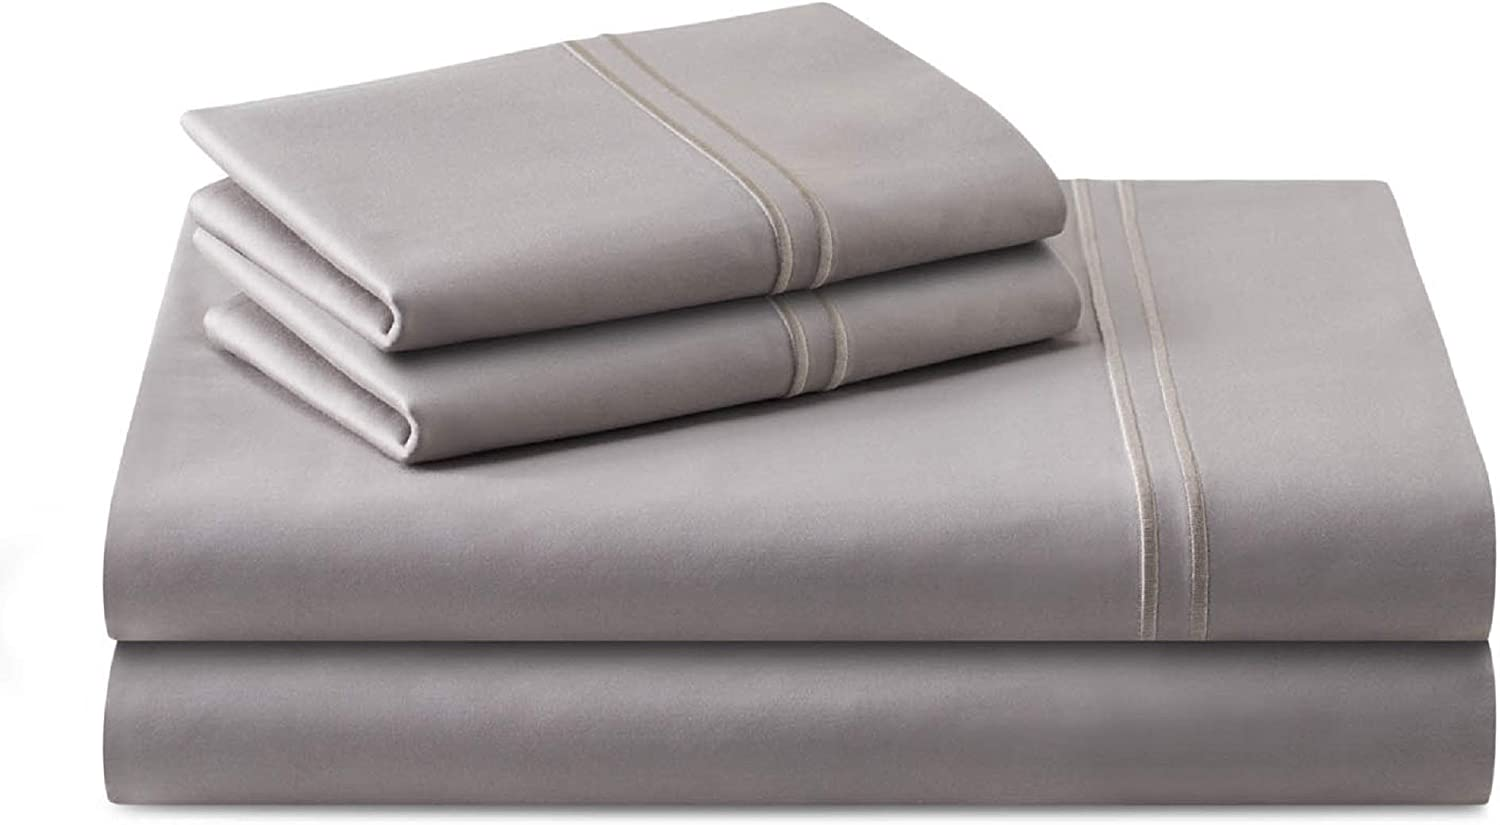 MALOUF Supima Premium Cotton Sheets-100 American L It is very popular Percent Grown Max 42% OFF